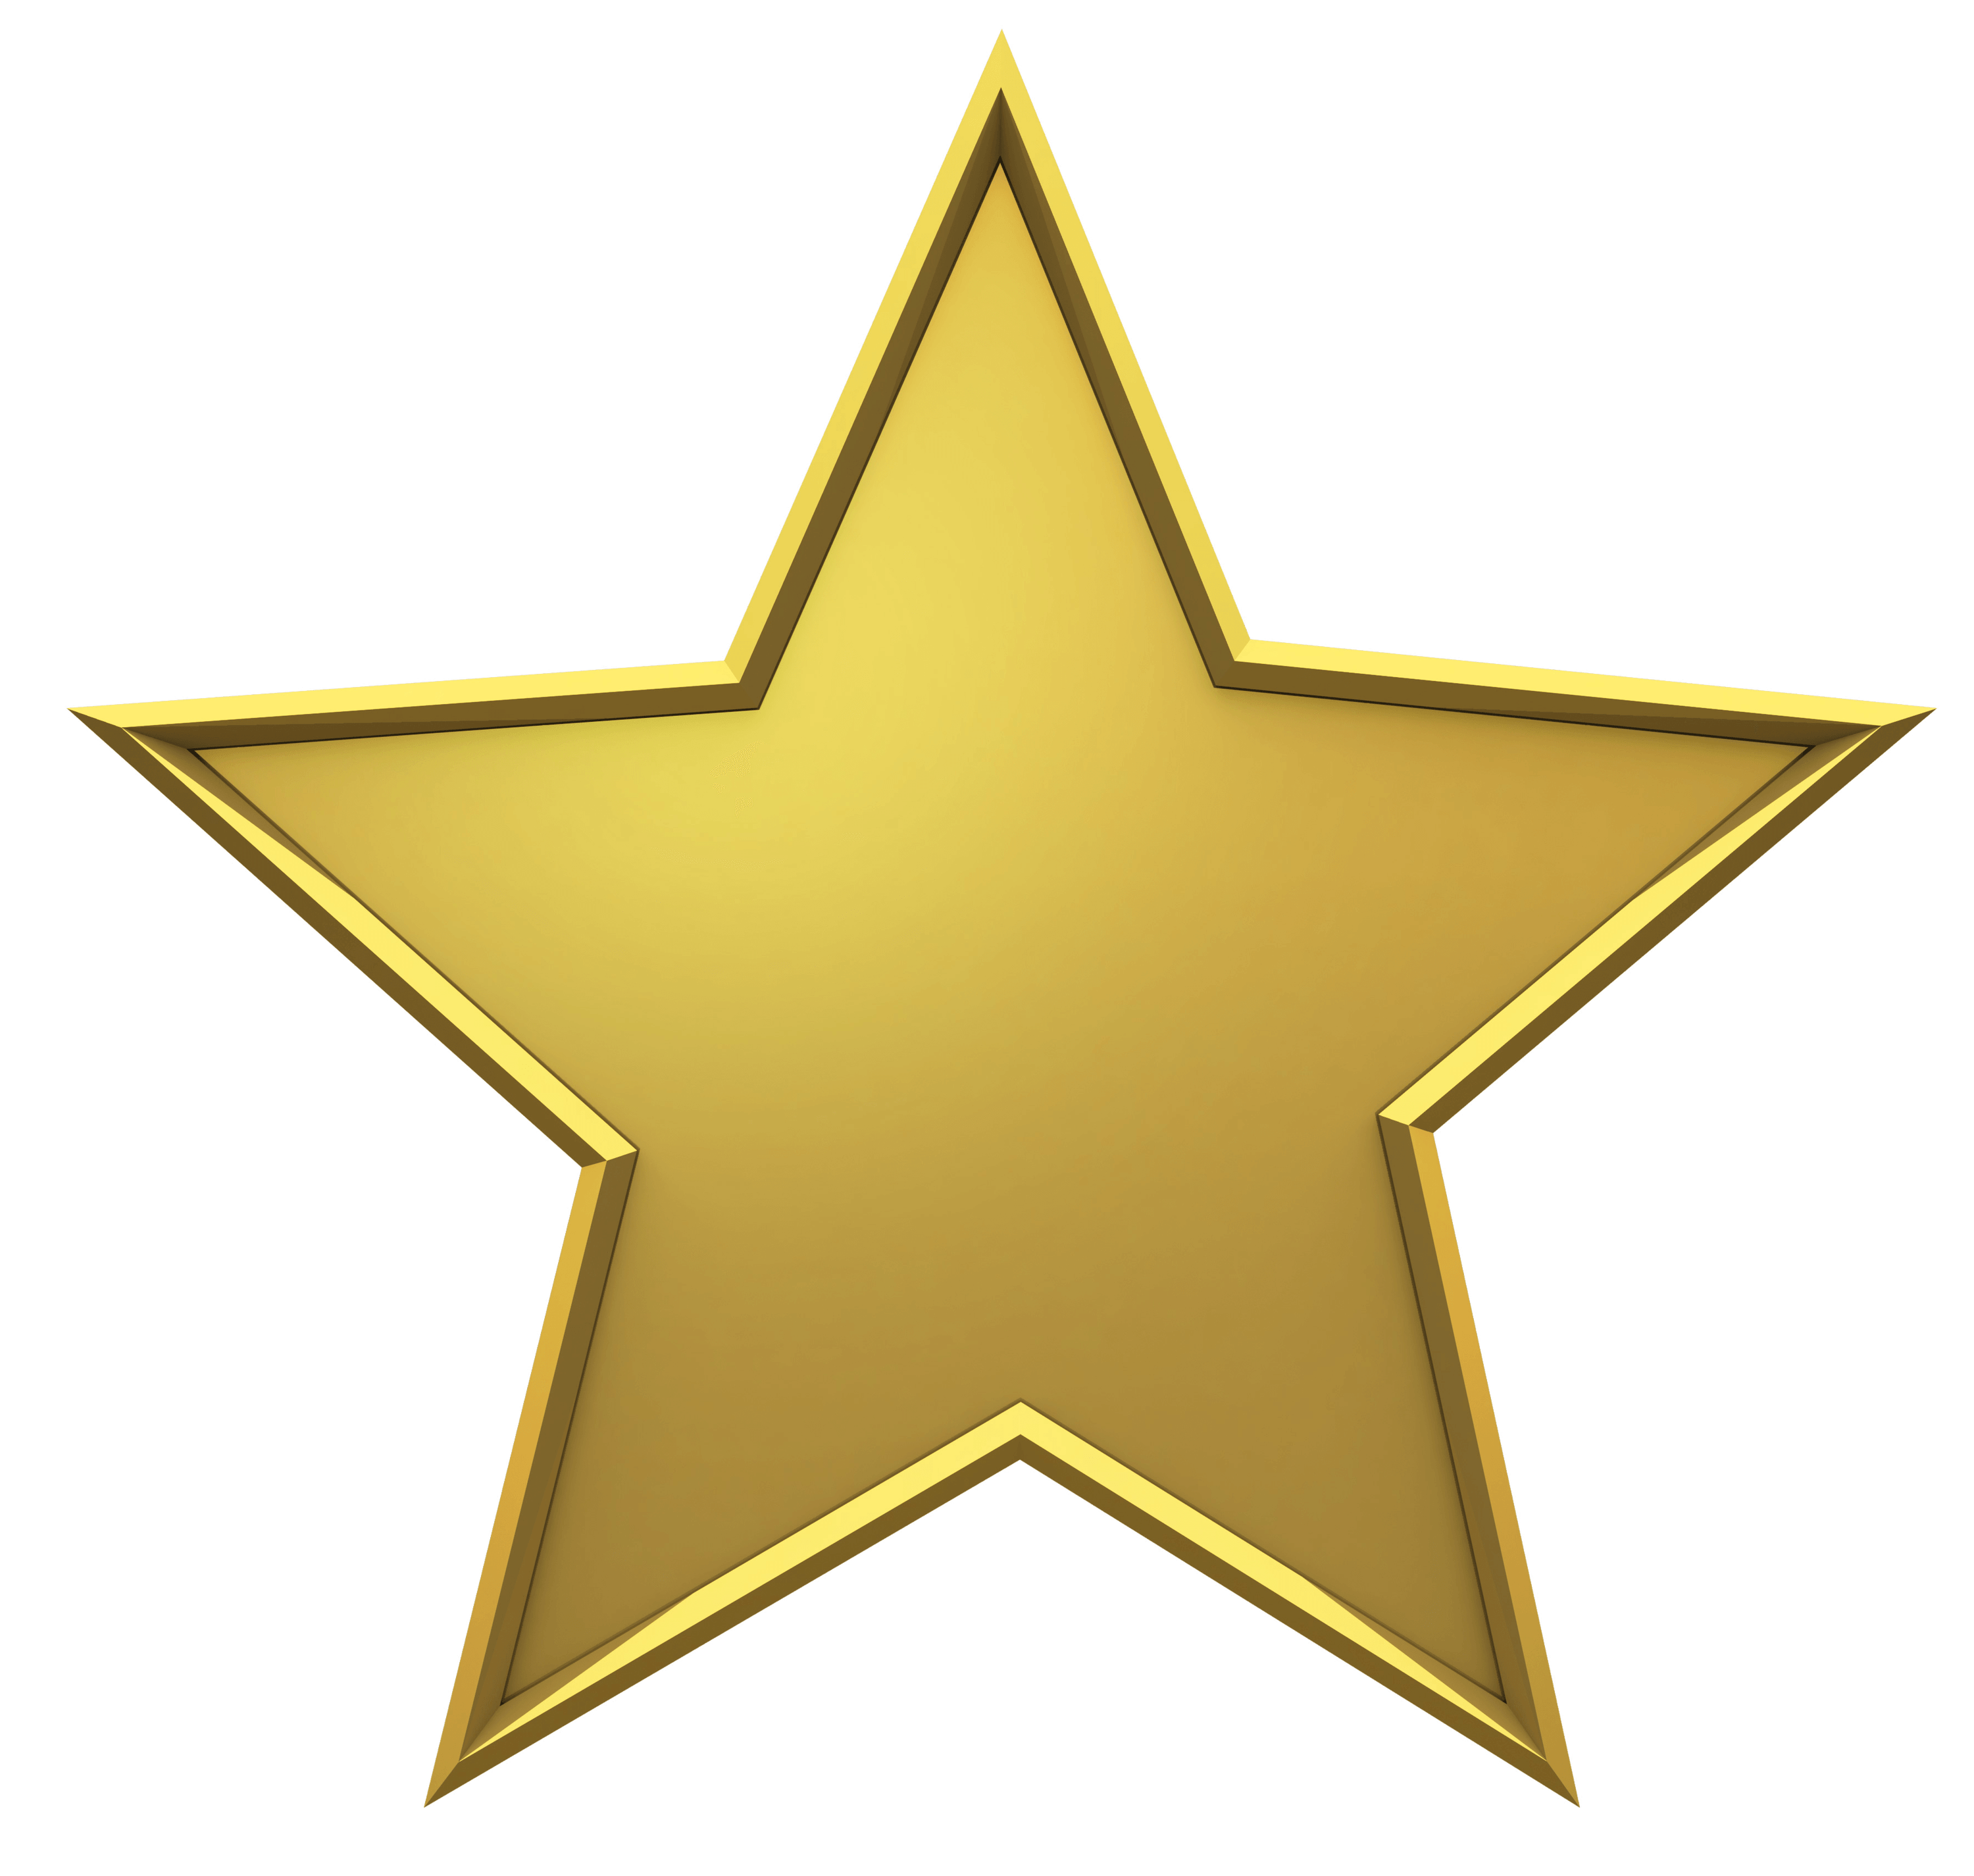 Hollywood Gold Star - Yellow Stars PNG HD - PNG HD Images Of Stars